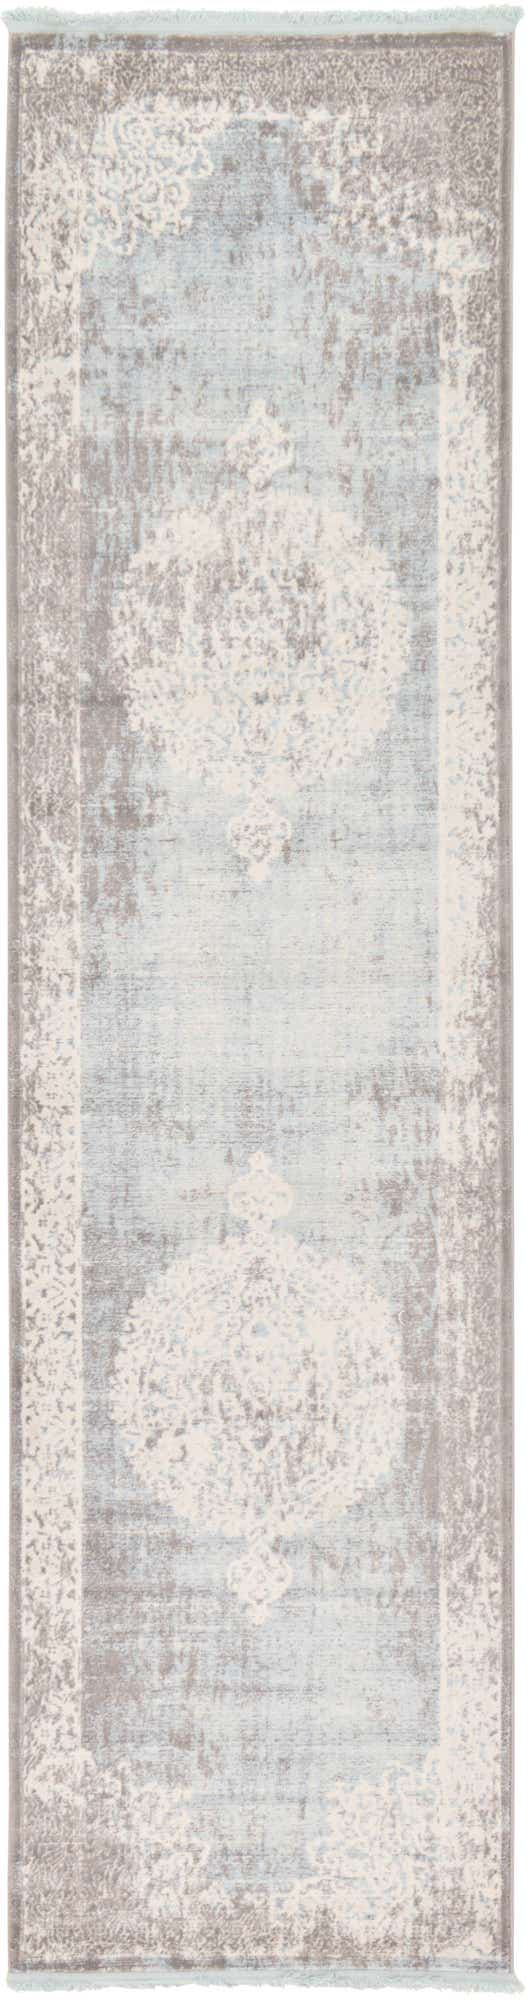 Light Blue 2' 7 x 10' New Classical Runner Rug